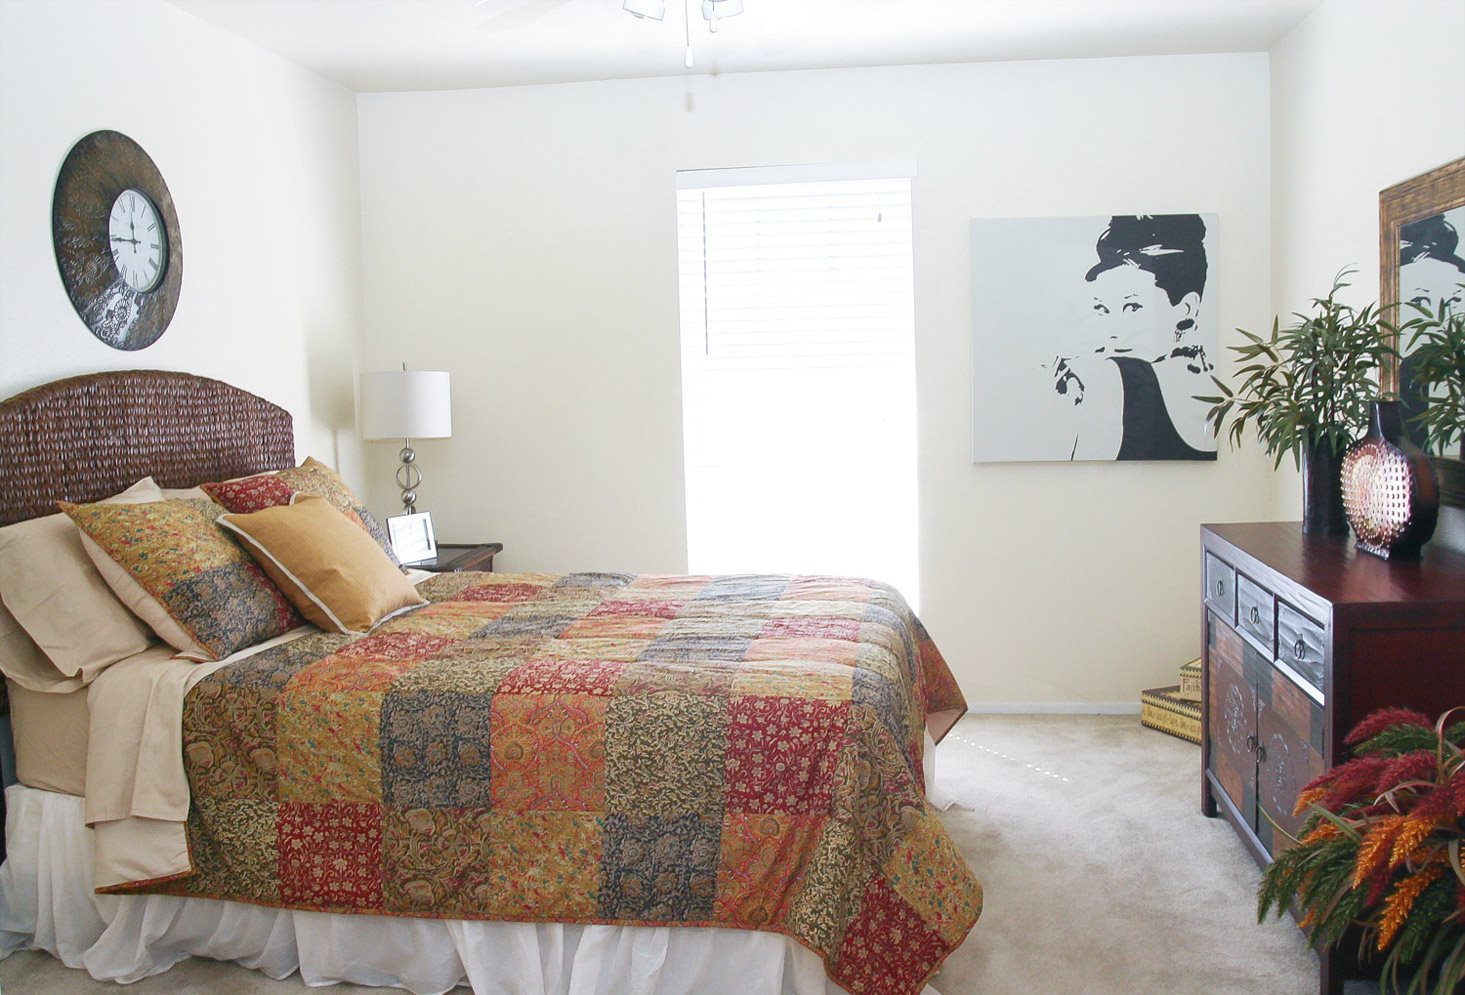 Apartment Bedroom Photo at Woodhollow Apartments in Huntsville , TX 77340